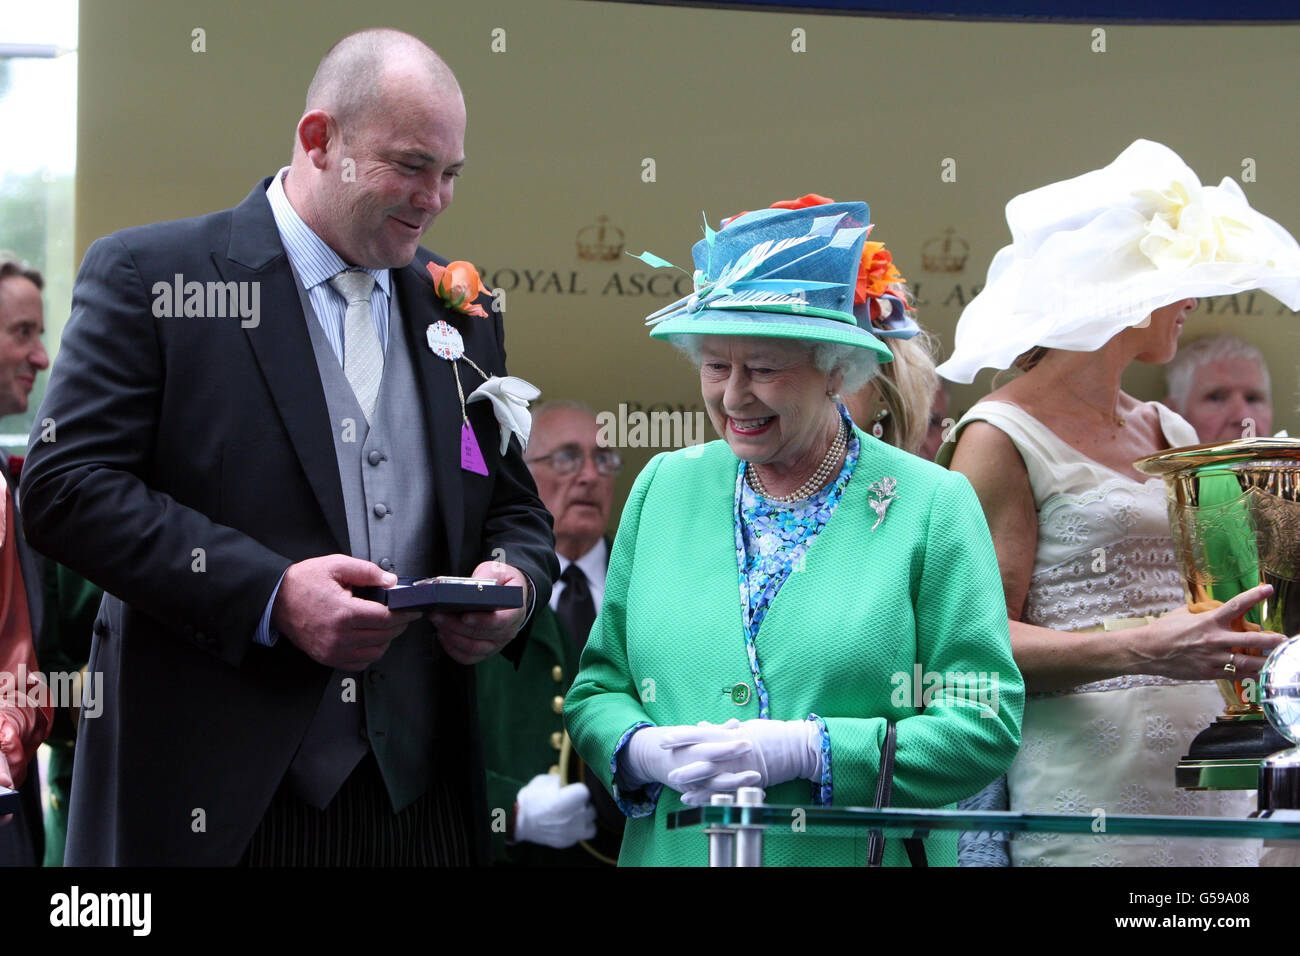 Horse Racing - The Royal Ascot Meeting 2012 - Day Five - Ascot Racecourse - Stock Image